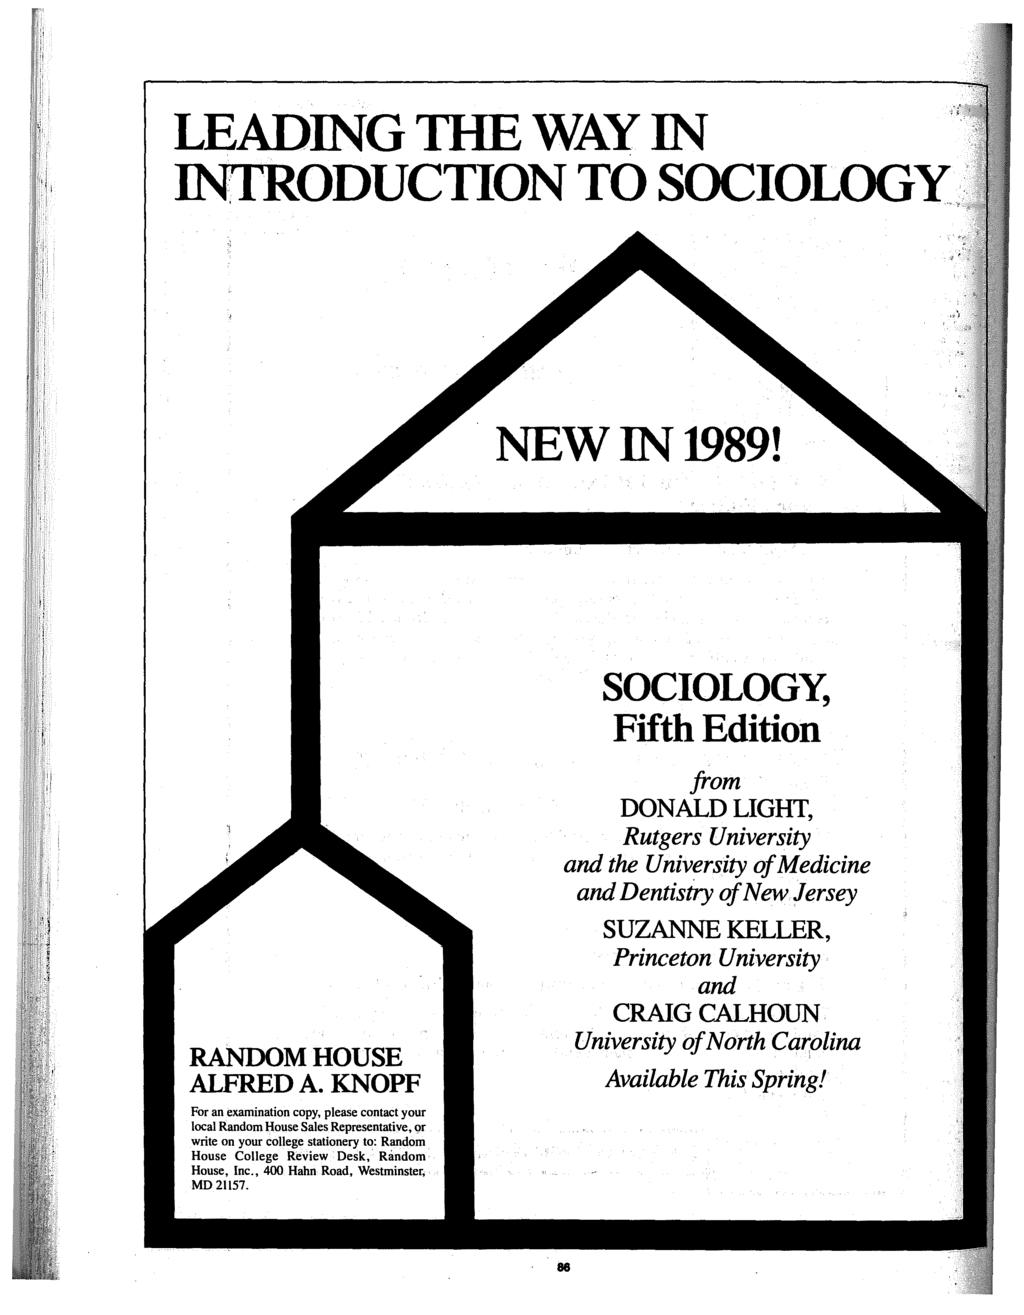 LEADING THE WAY IN INTRODUCTION TO SOCIOLOGY.:' NEWIN1989! SOCIOLOGY, Fifth Edition RANDOM HOUSE ALFRED A.